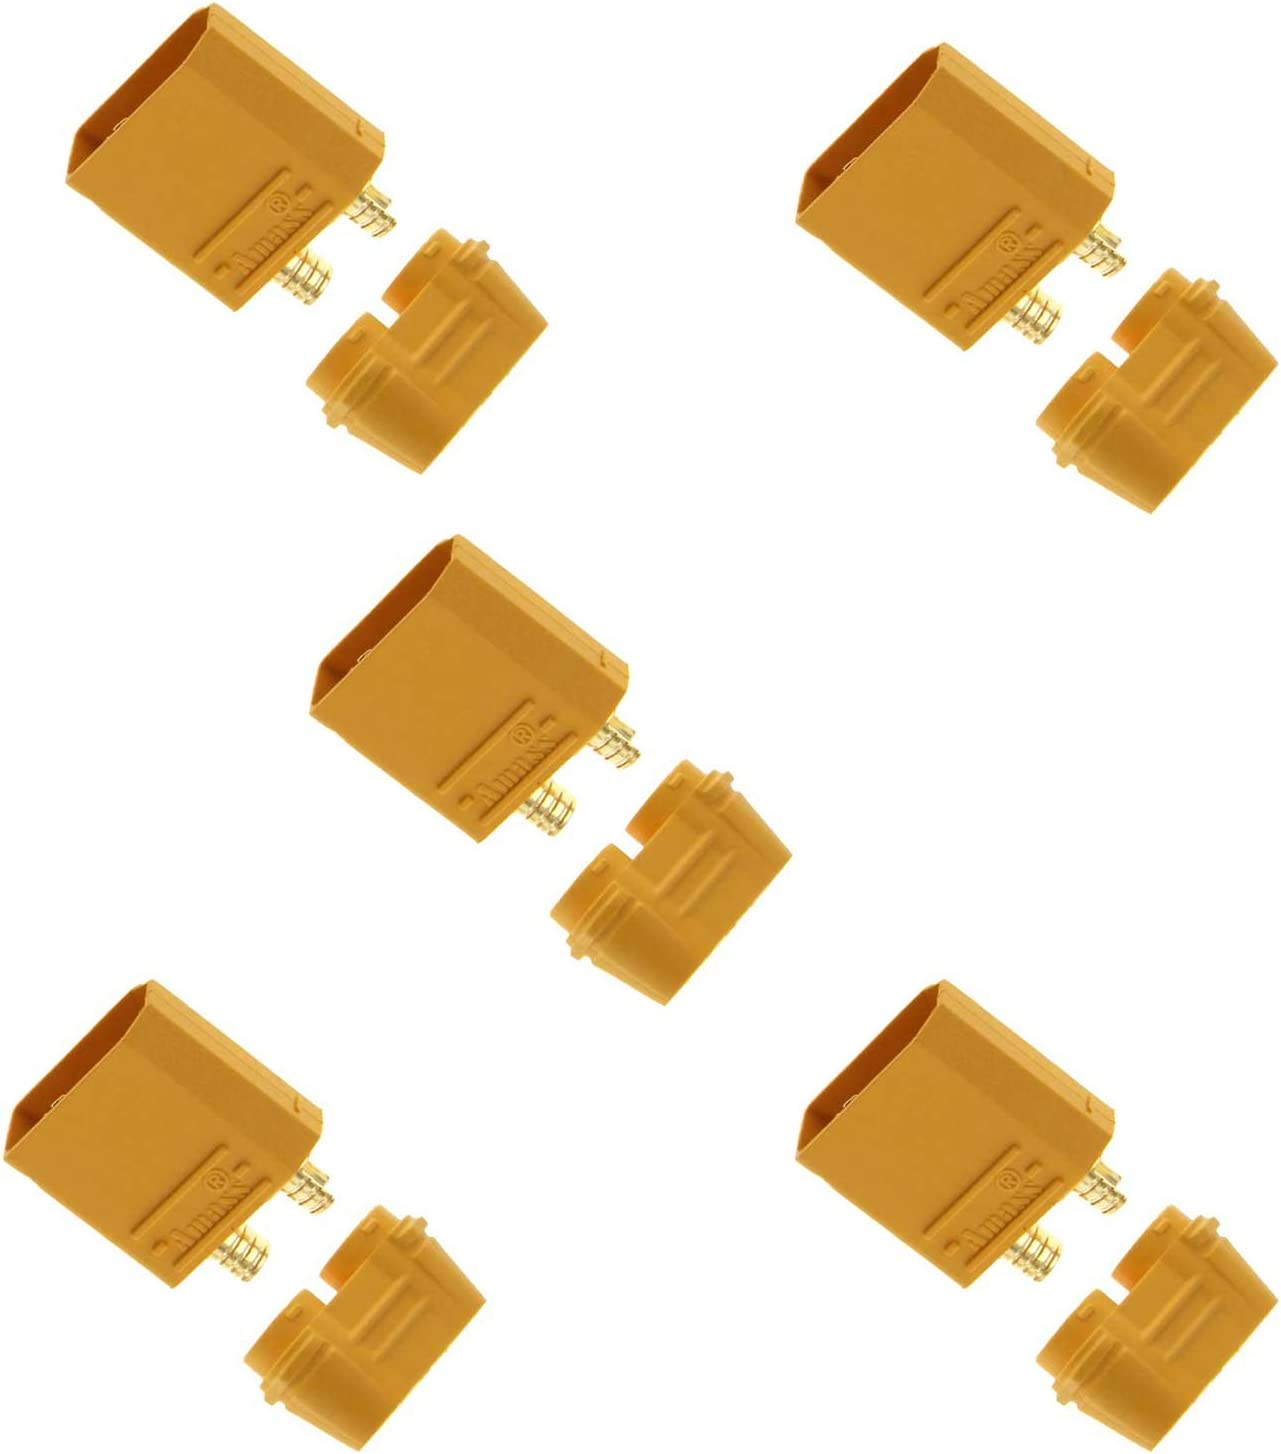 Amass XT90//XT90-S Male Battery Connector Plug for Device or Charge Lead 5 Piece